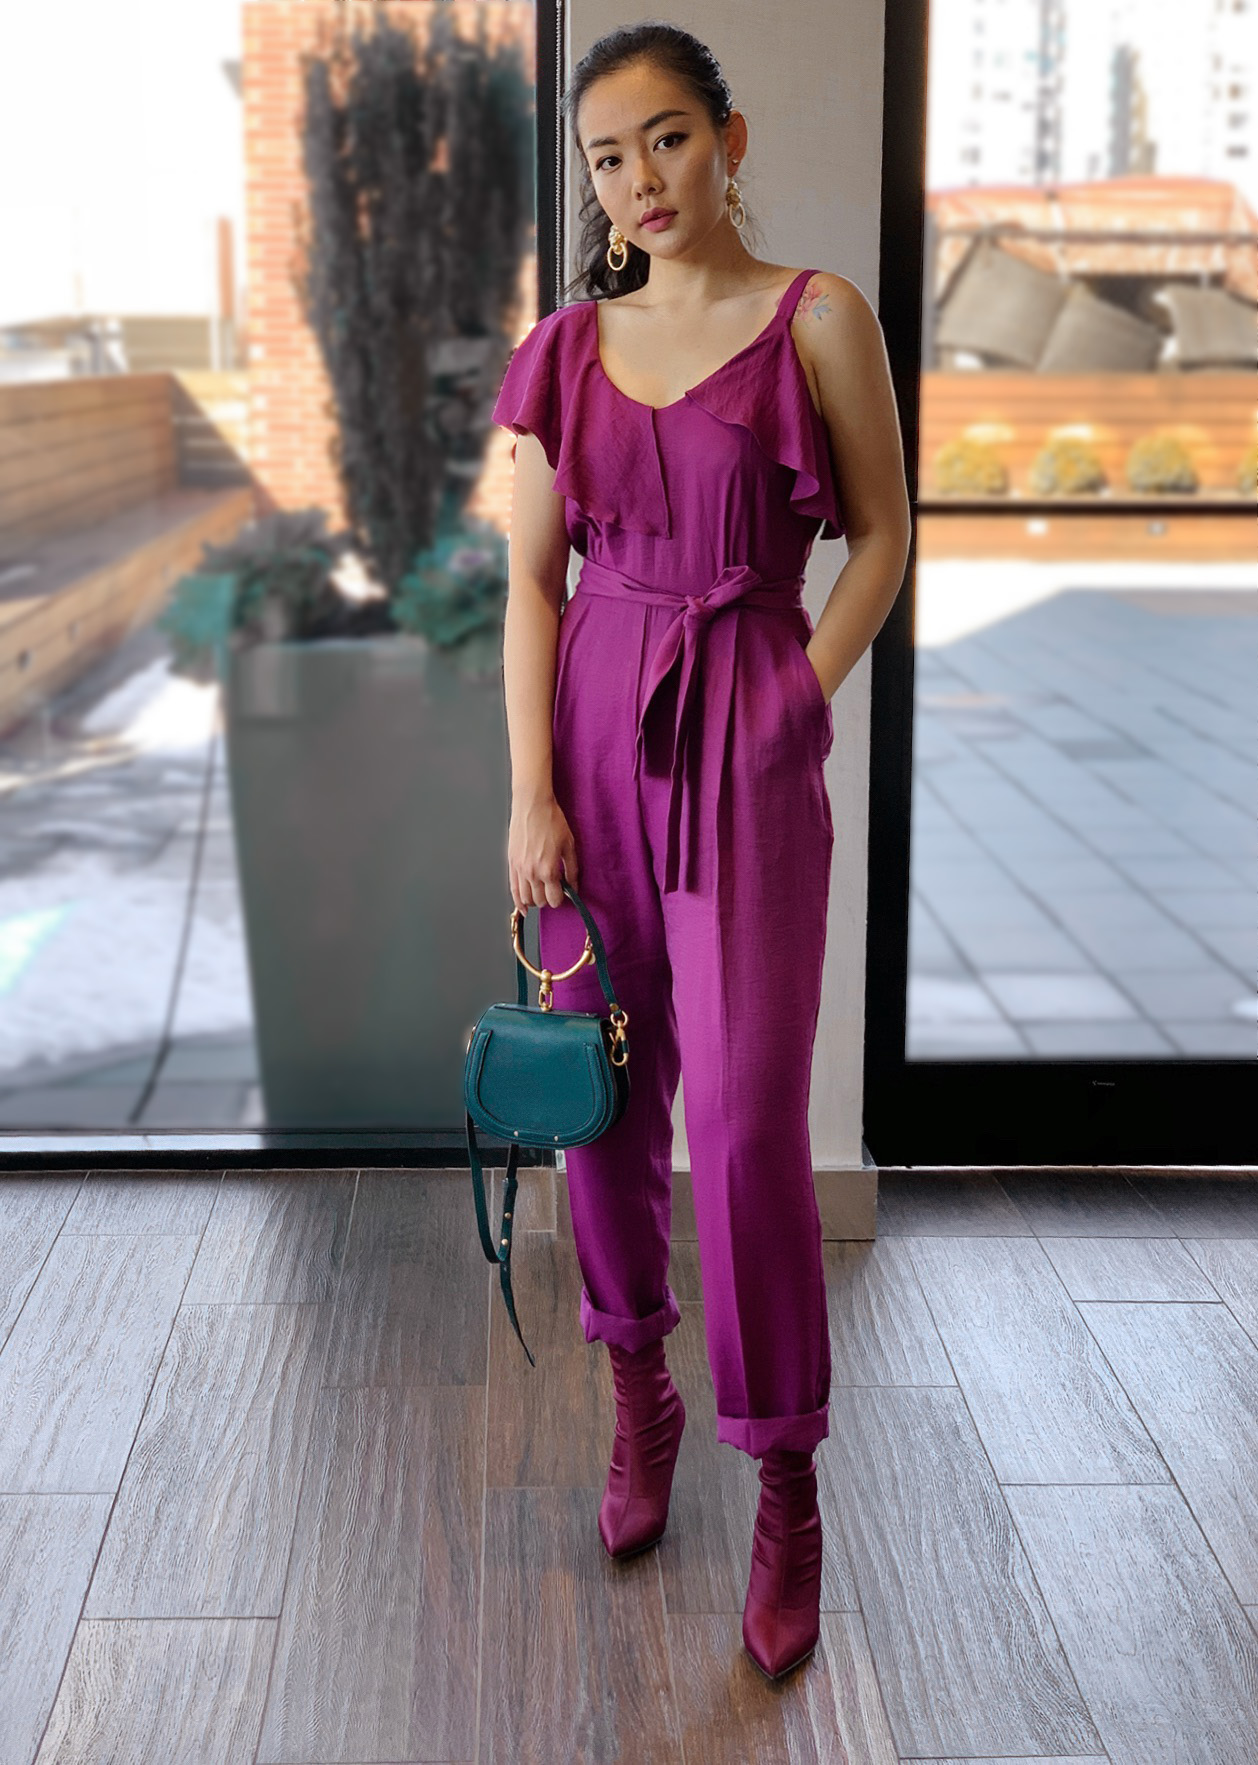 Holiday Party Outfit Ideas - Effortless & Elegant